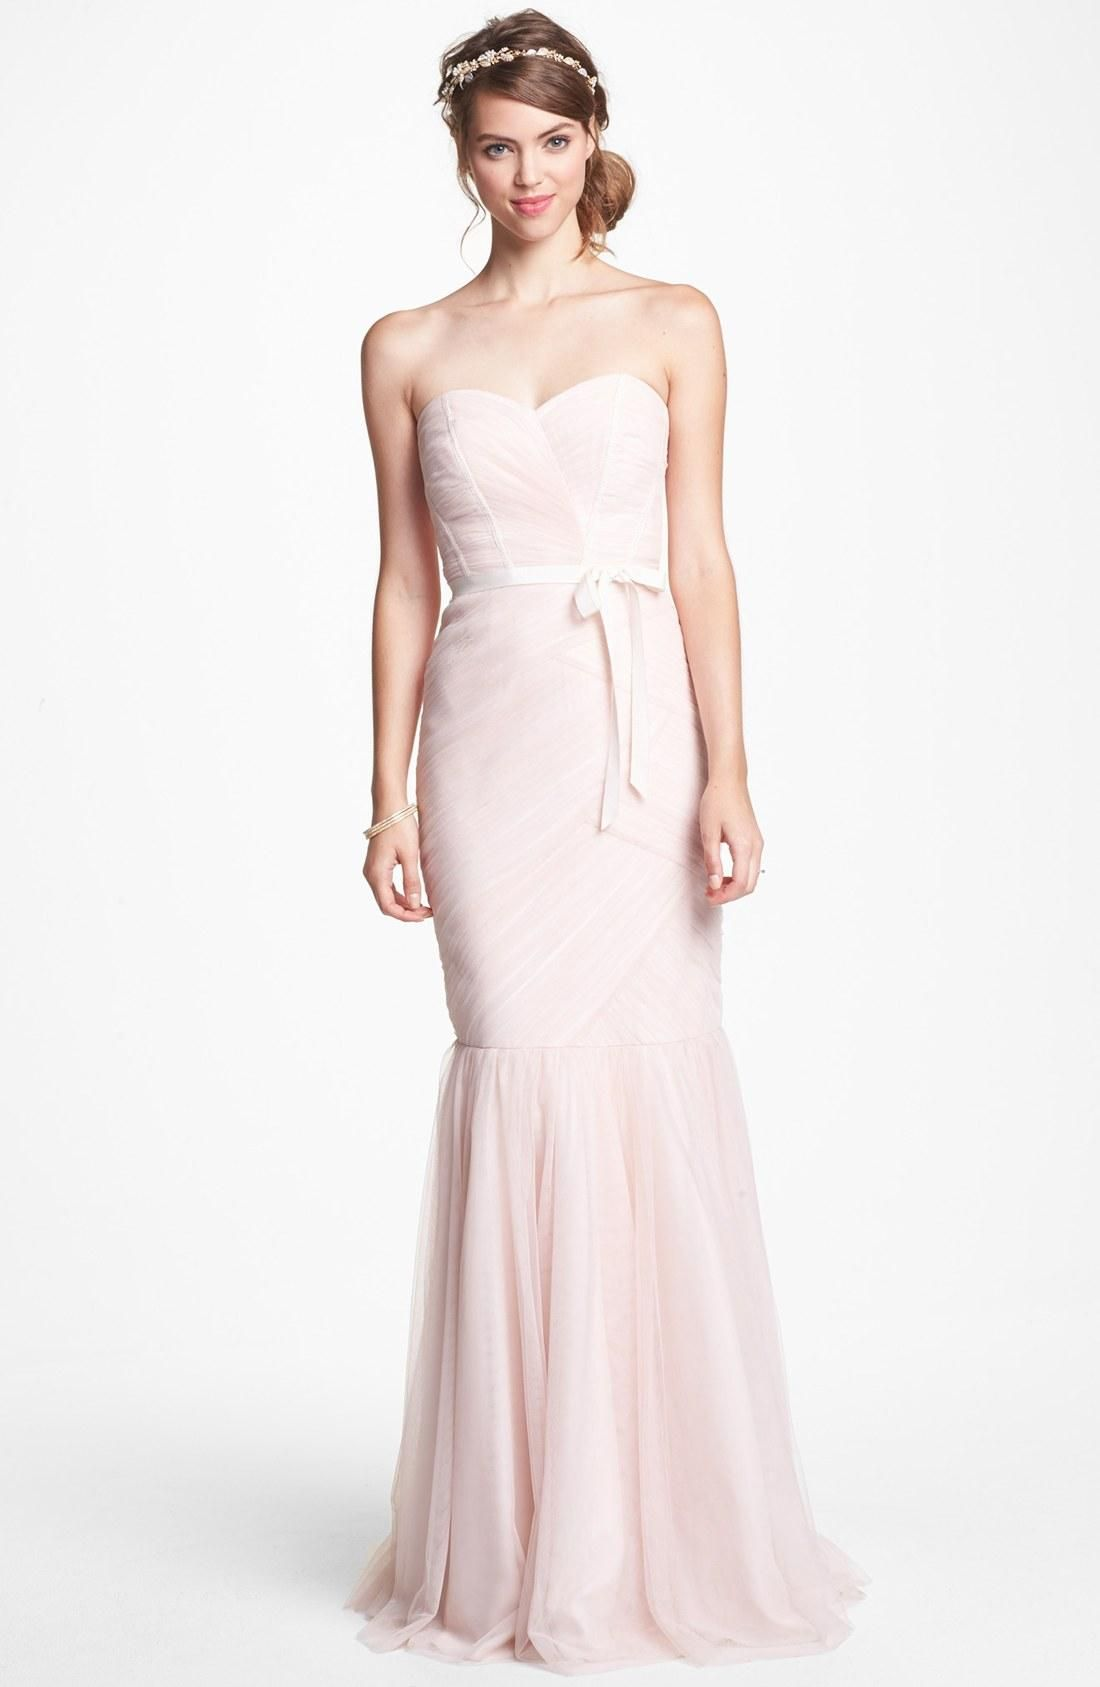 Soft Blush Tulle Trumpet Dress By Ml Monique Lhuillier Bridesmaids